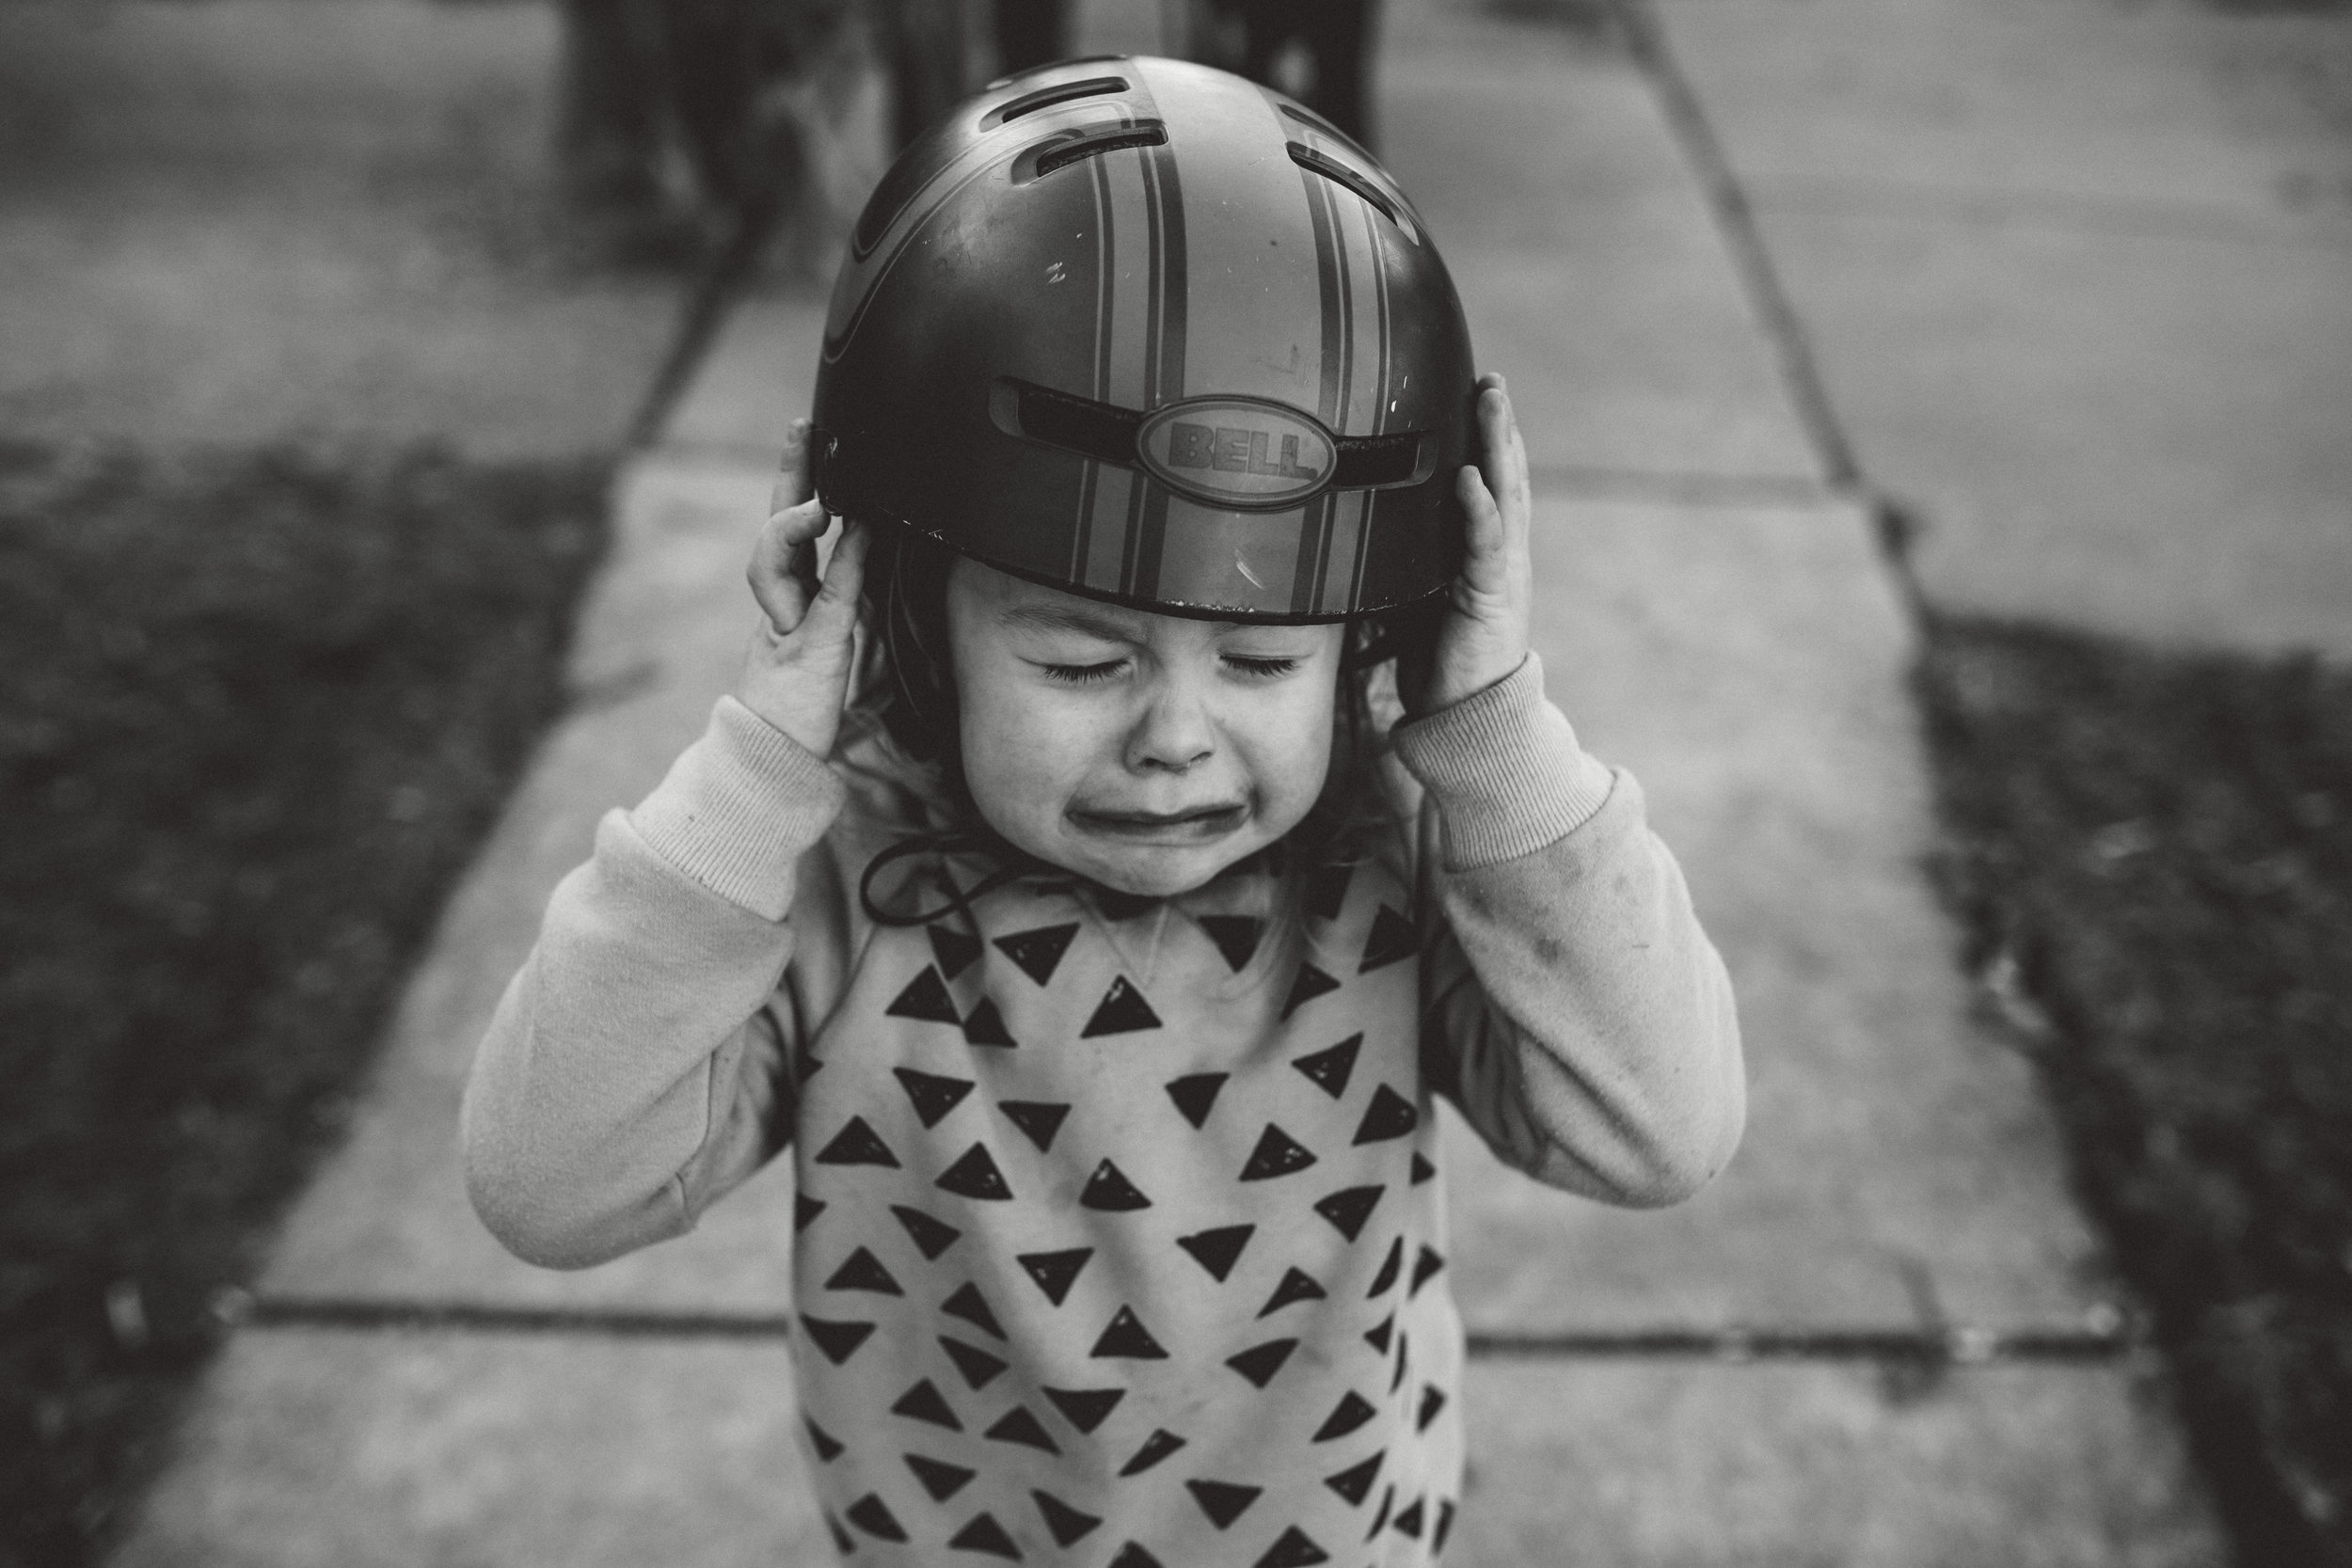 Little boy crying about helmet.